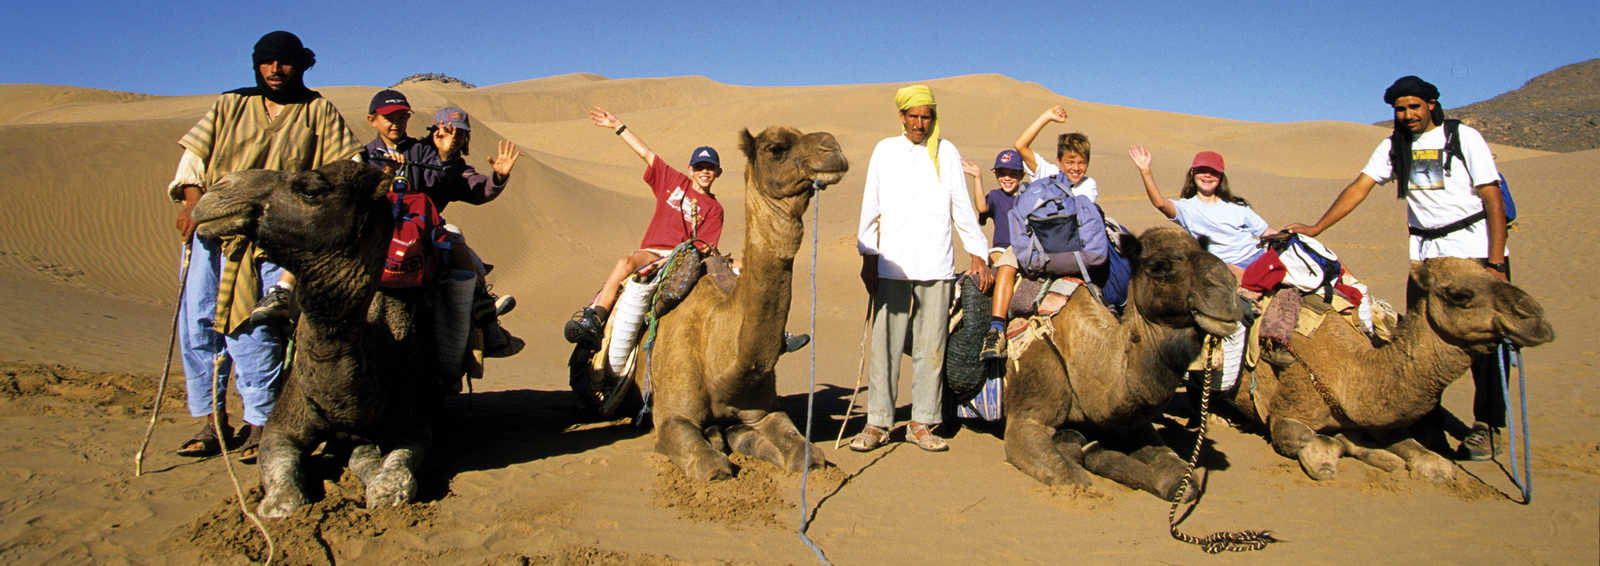 Family adventurers with their camels and drivers